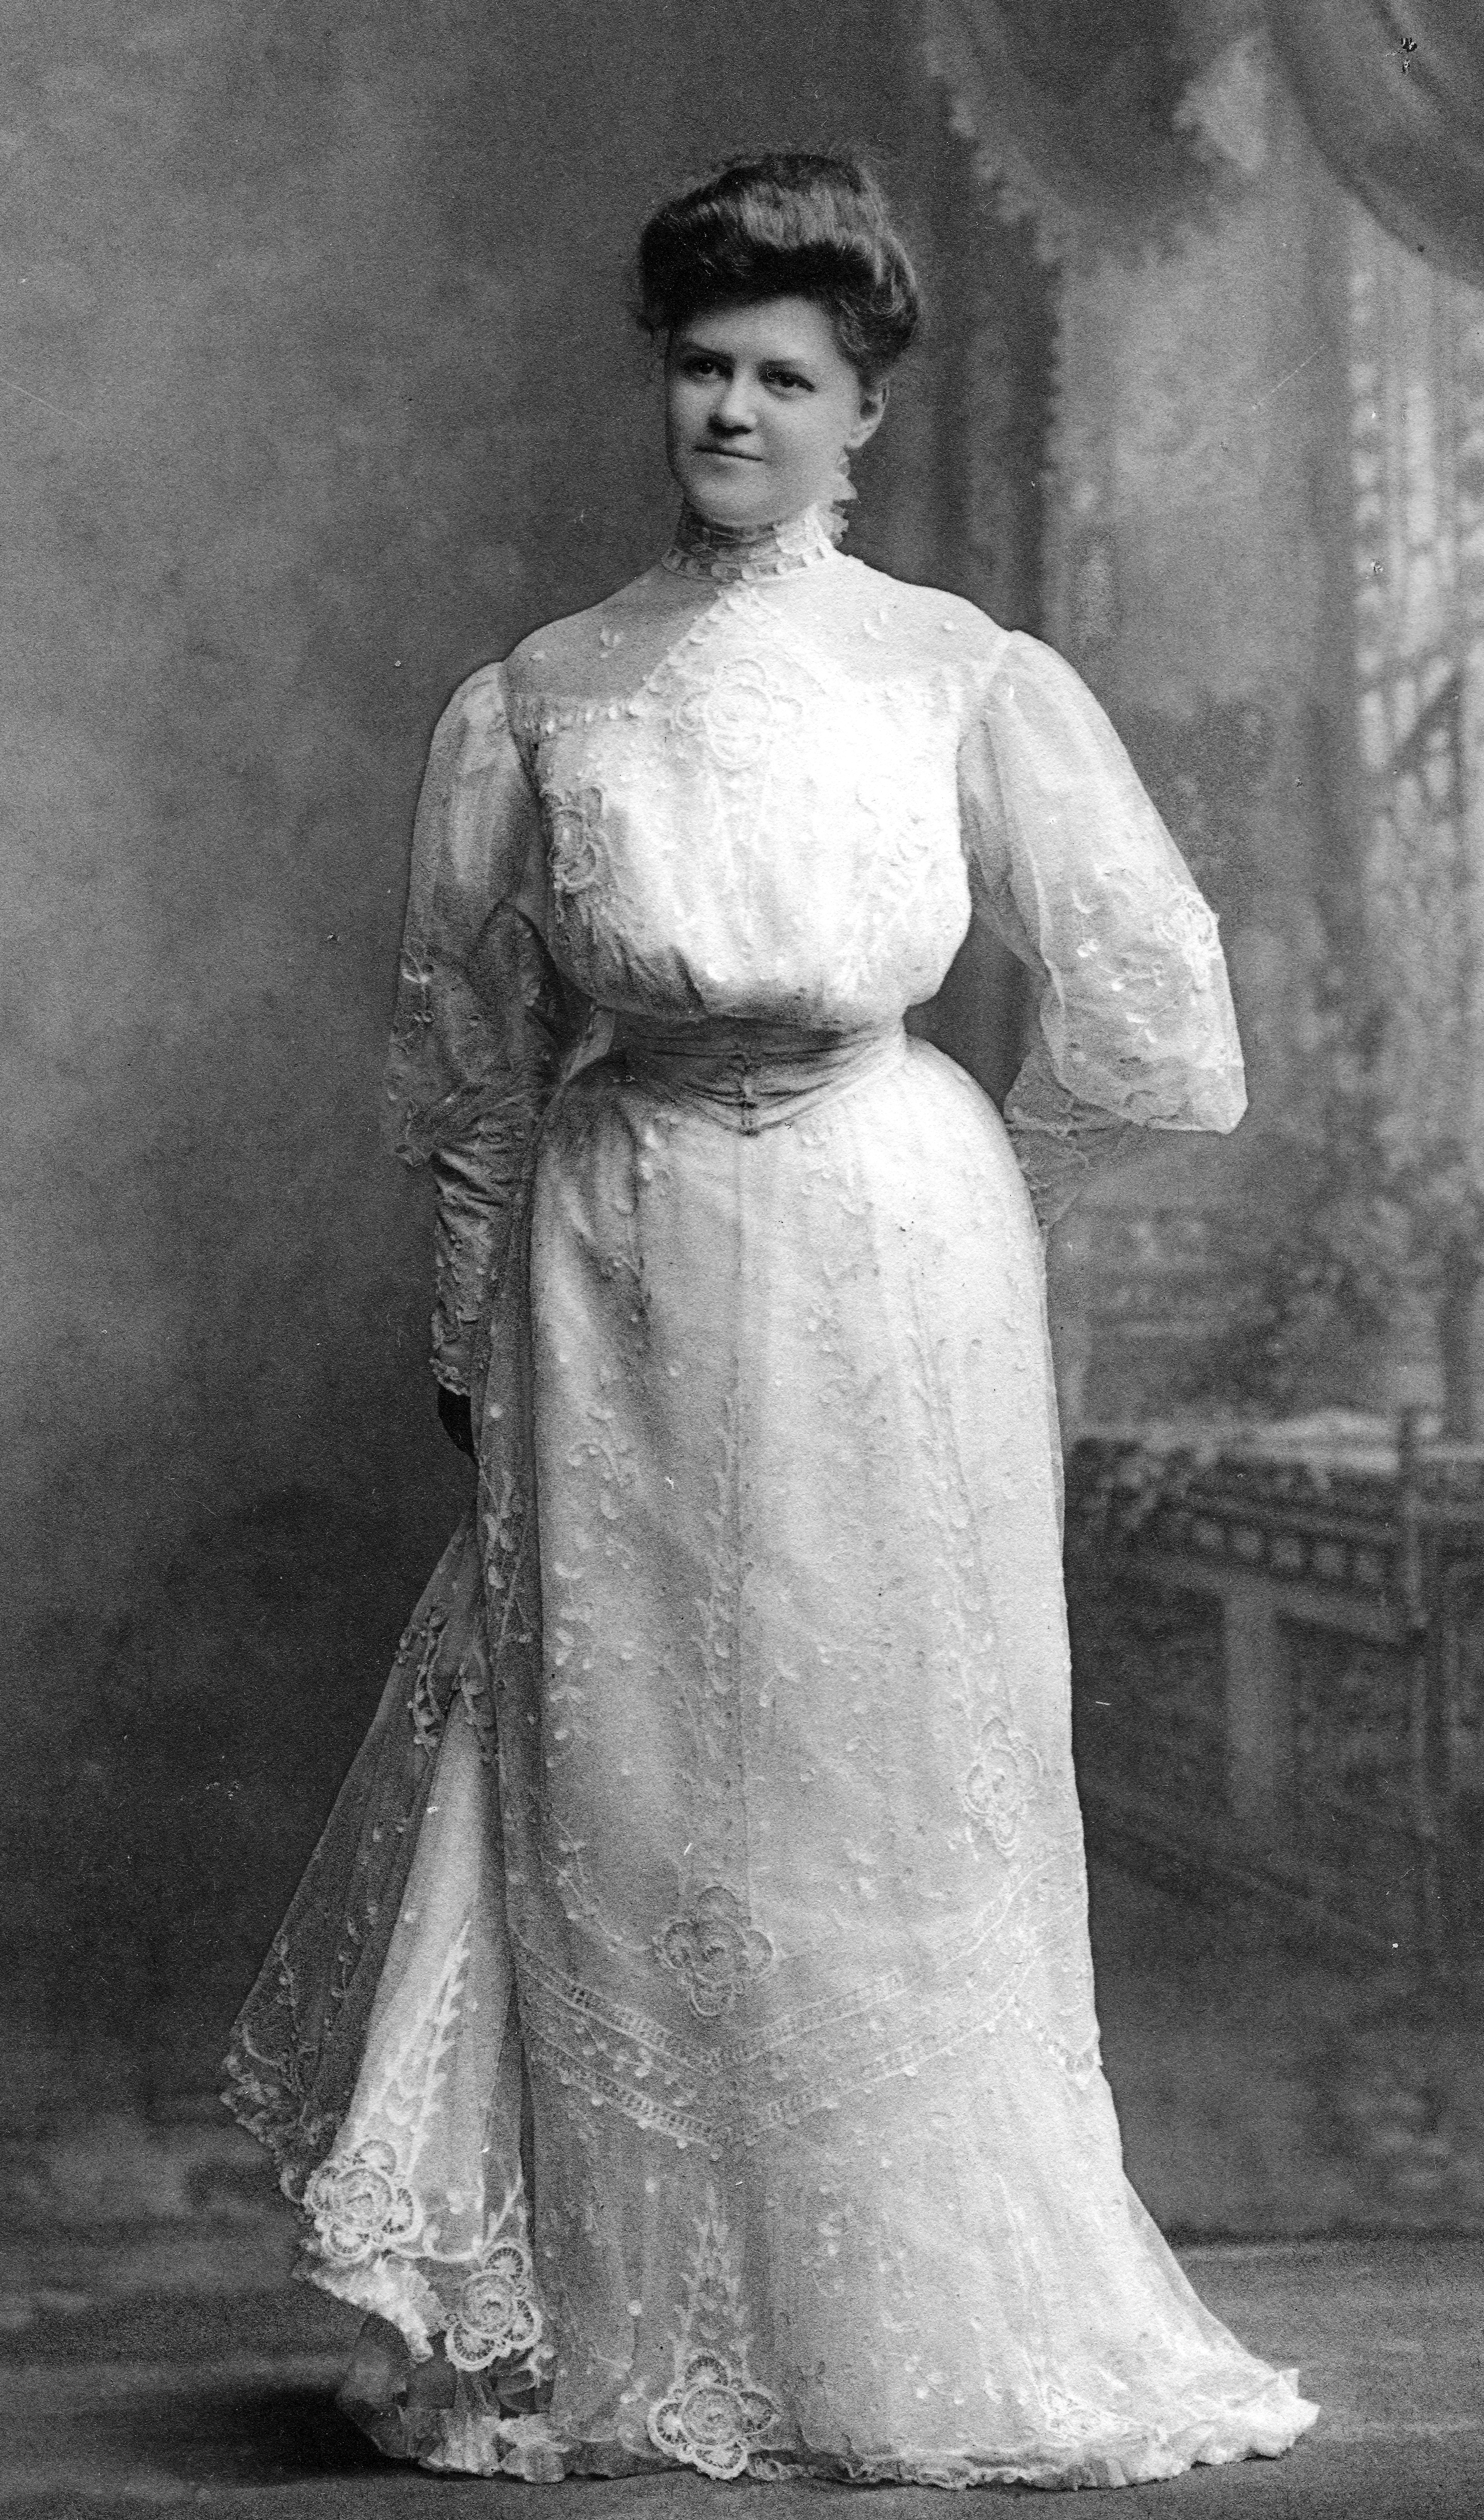 Myrtle Abbott McCarty, married 30 November 1904